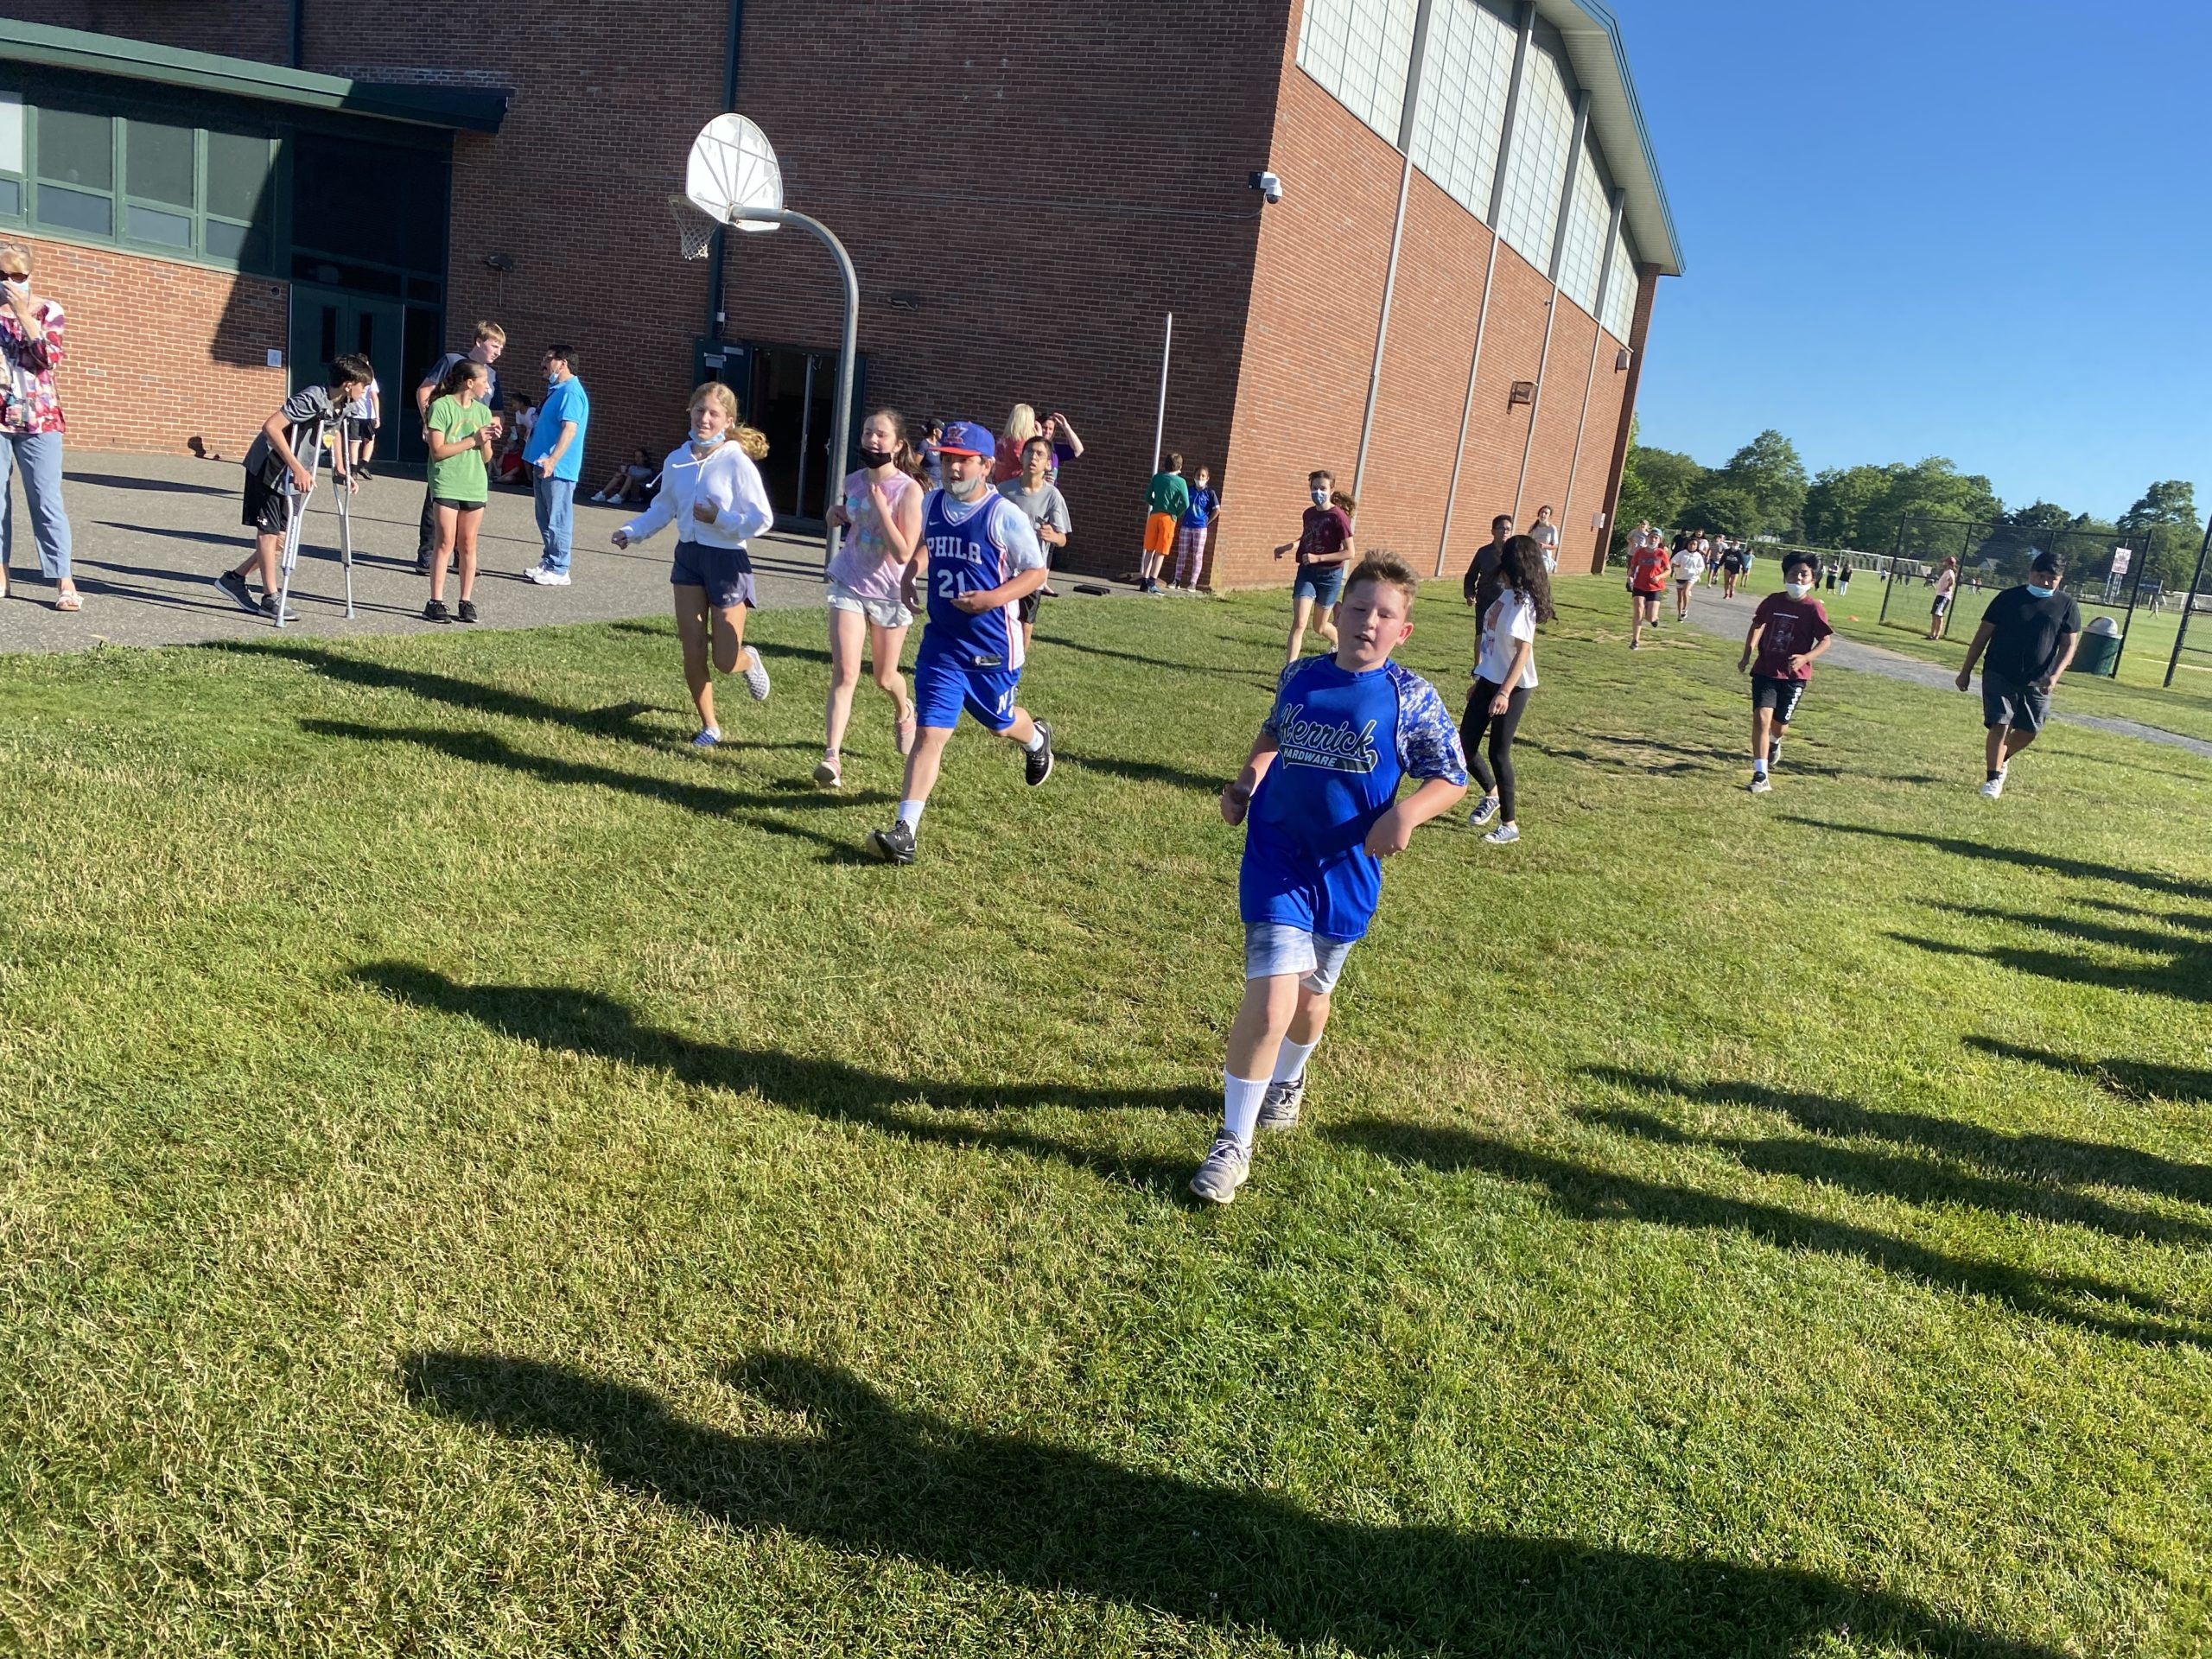 Southampton Intermediate School students and faculty raised more than $3,000 to benefit the Heart of the Hamptons on June 25. The funds were raised through the school's annual Run Against Hunger fun run, where students and staff enjoyed fresh air while raising awareness and funds for the cause.